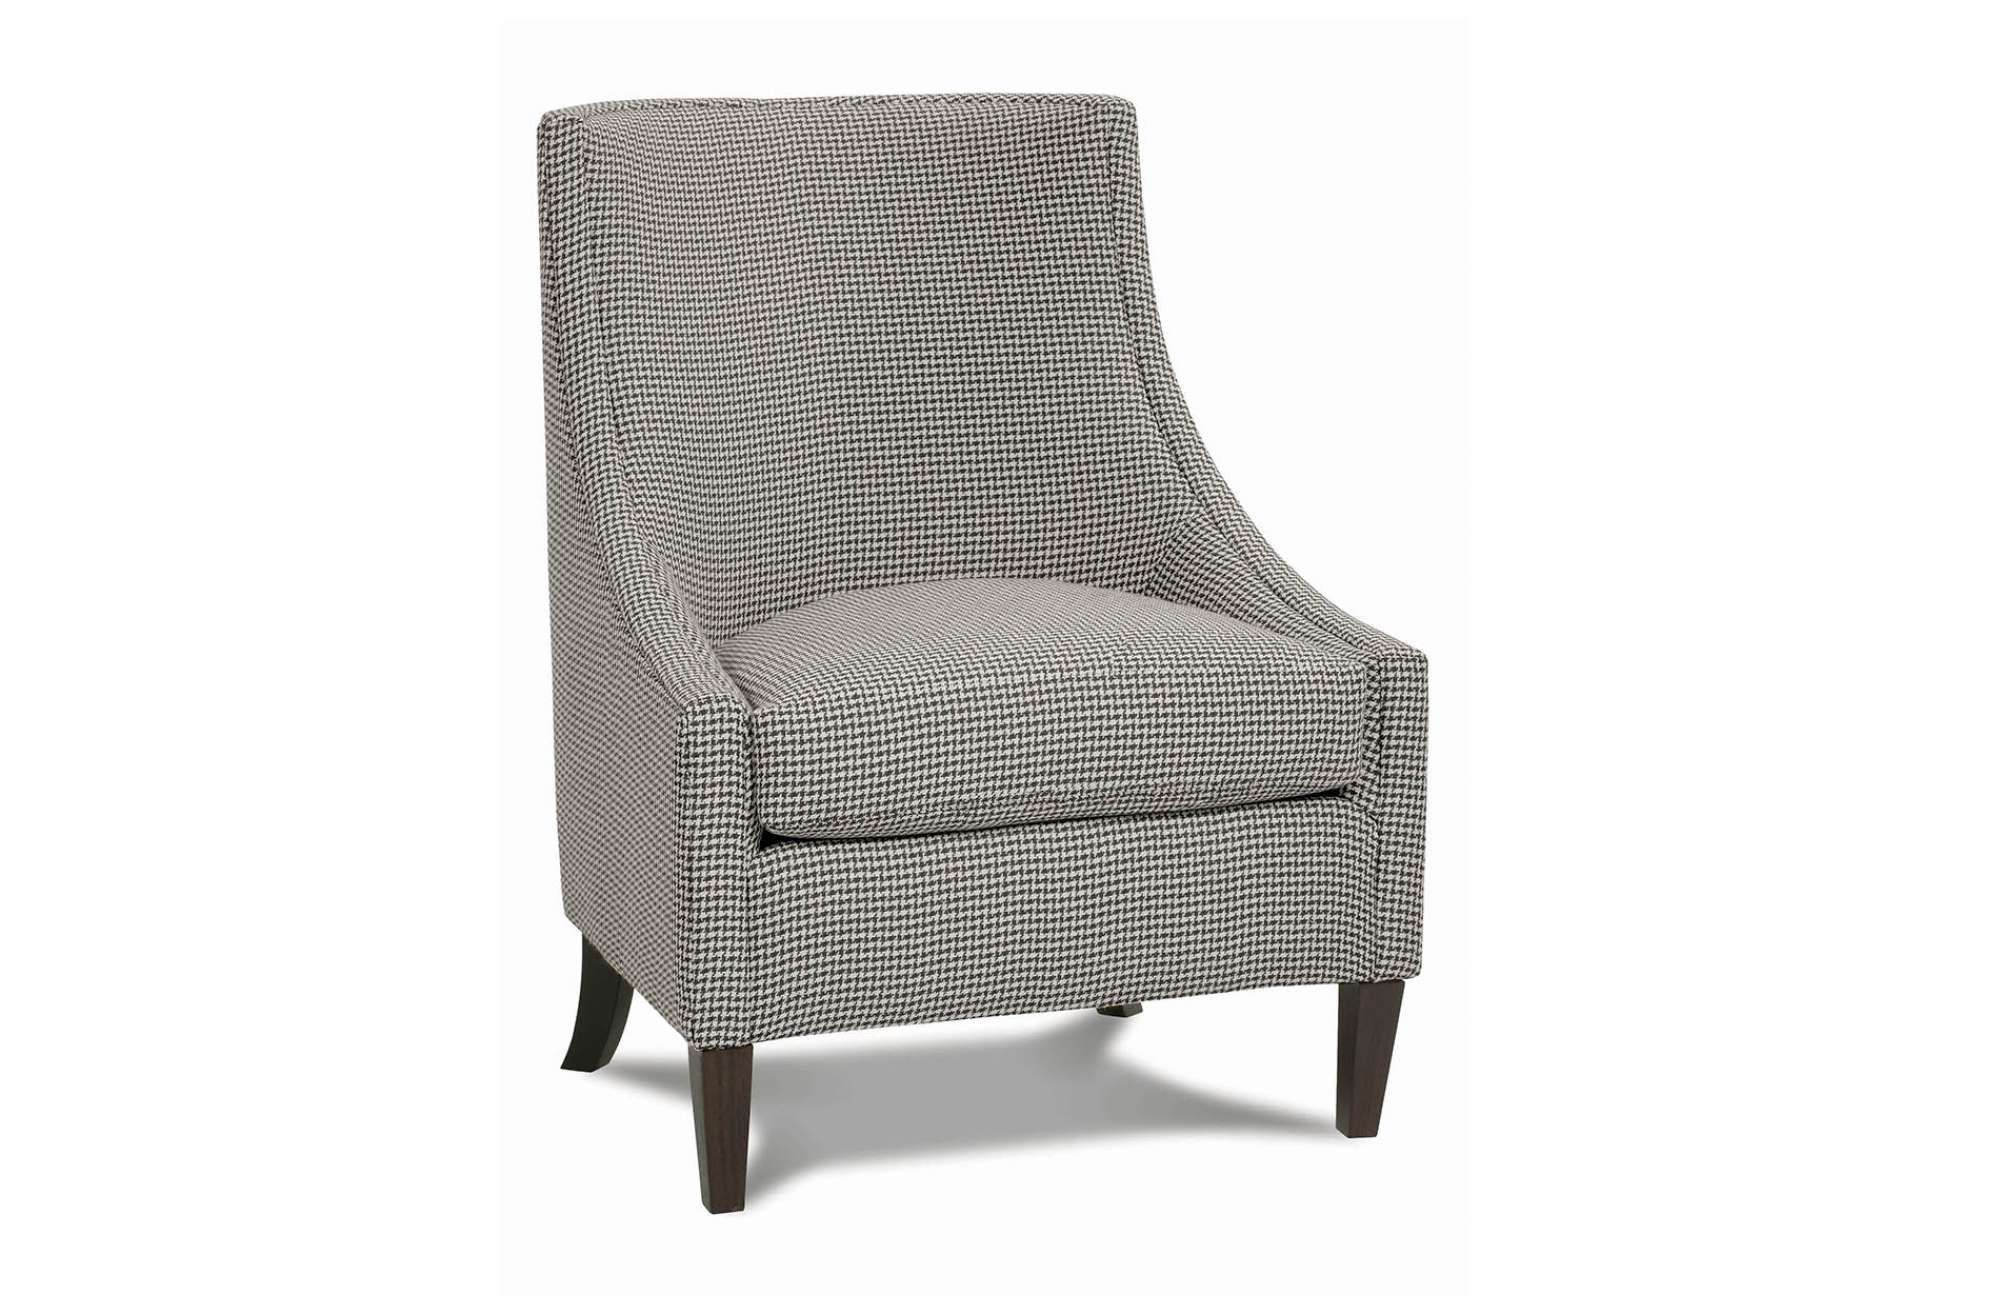 Outstanding Dixon Chair Rowe Furniture Living Room Ottoman Table Caraccident5 Cool Chair Designs And Ideas Caraccident5Info